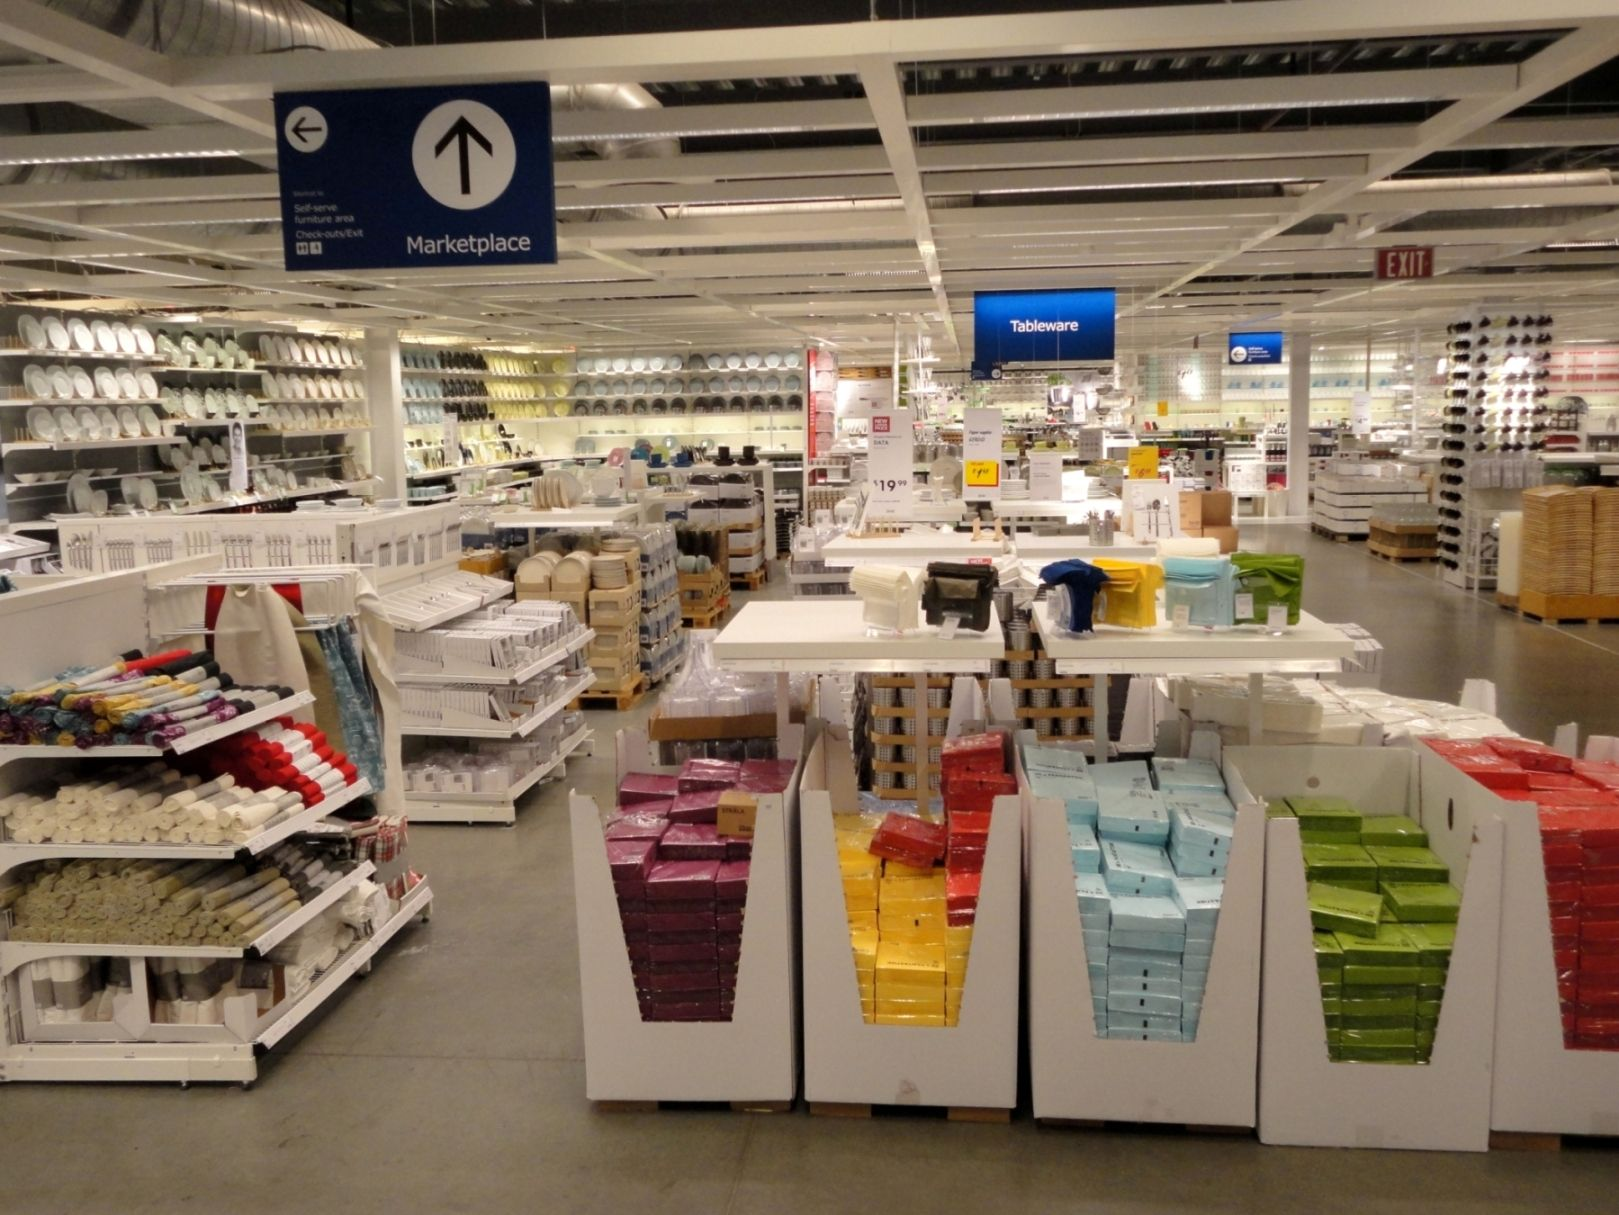 Redesigned marketplace at IKEA in West Chester | Things to Do | Ikea on kroger cincinnati map, ikea cincinnati address, metro cincinnati map, ikea cincinnati hotels,